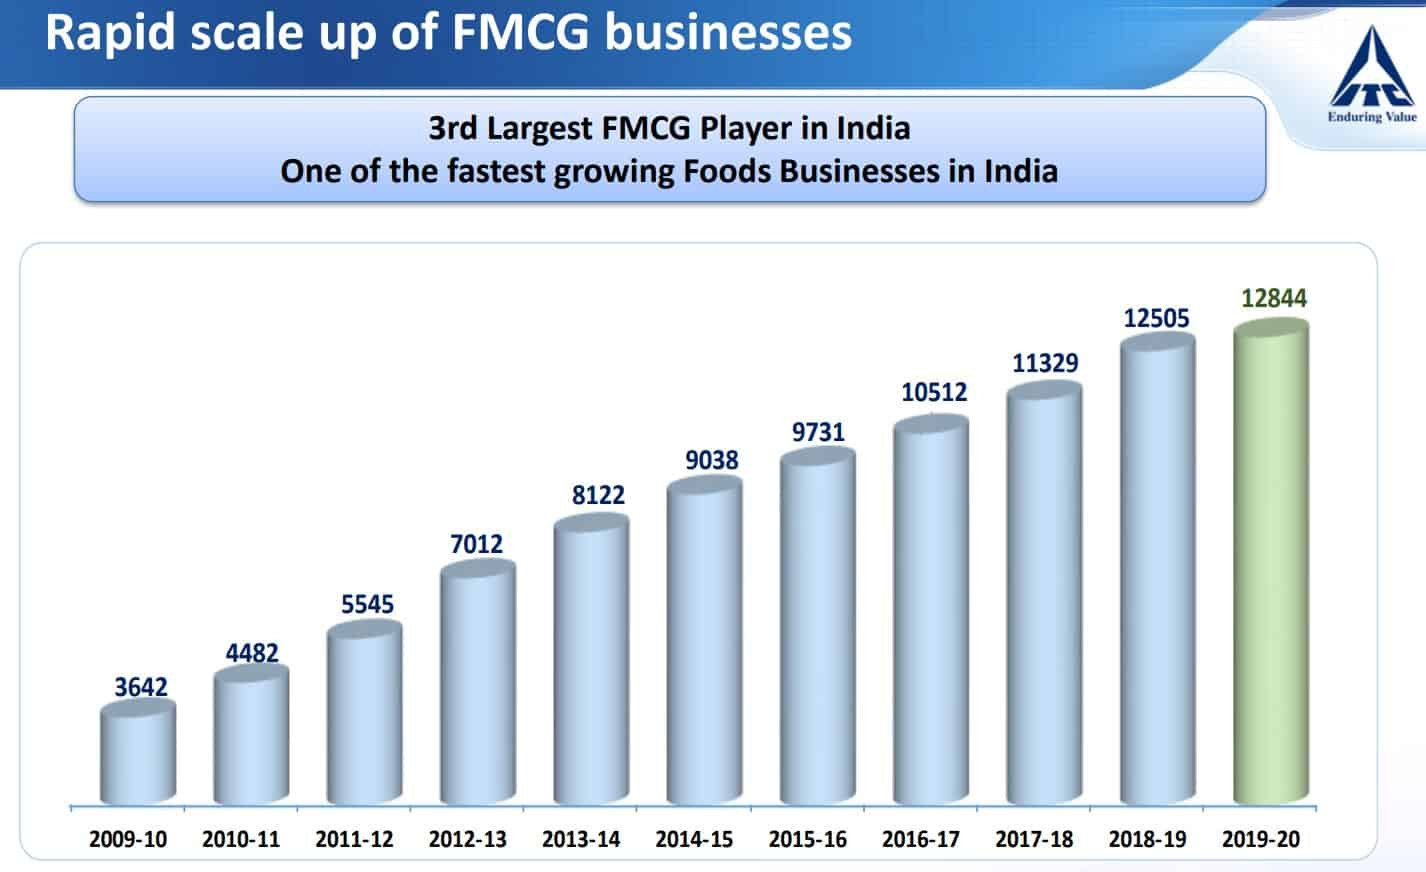 Growth of ITC FMCG Business